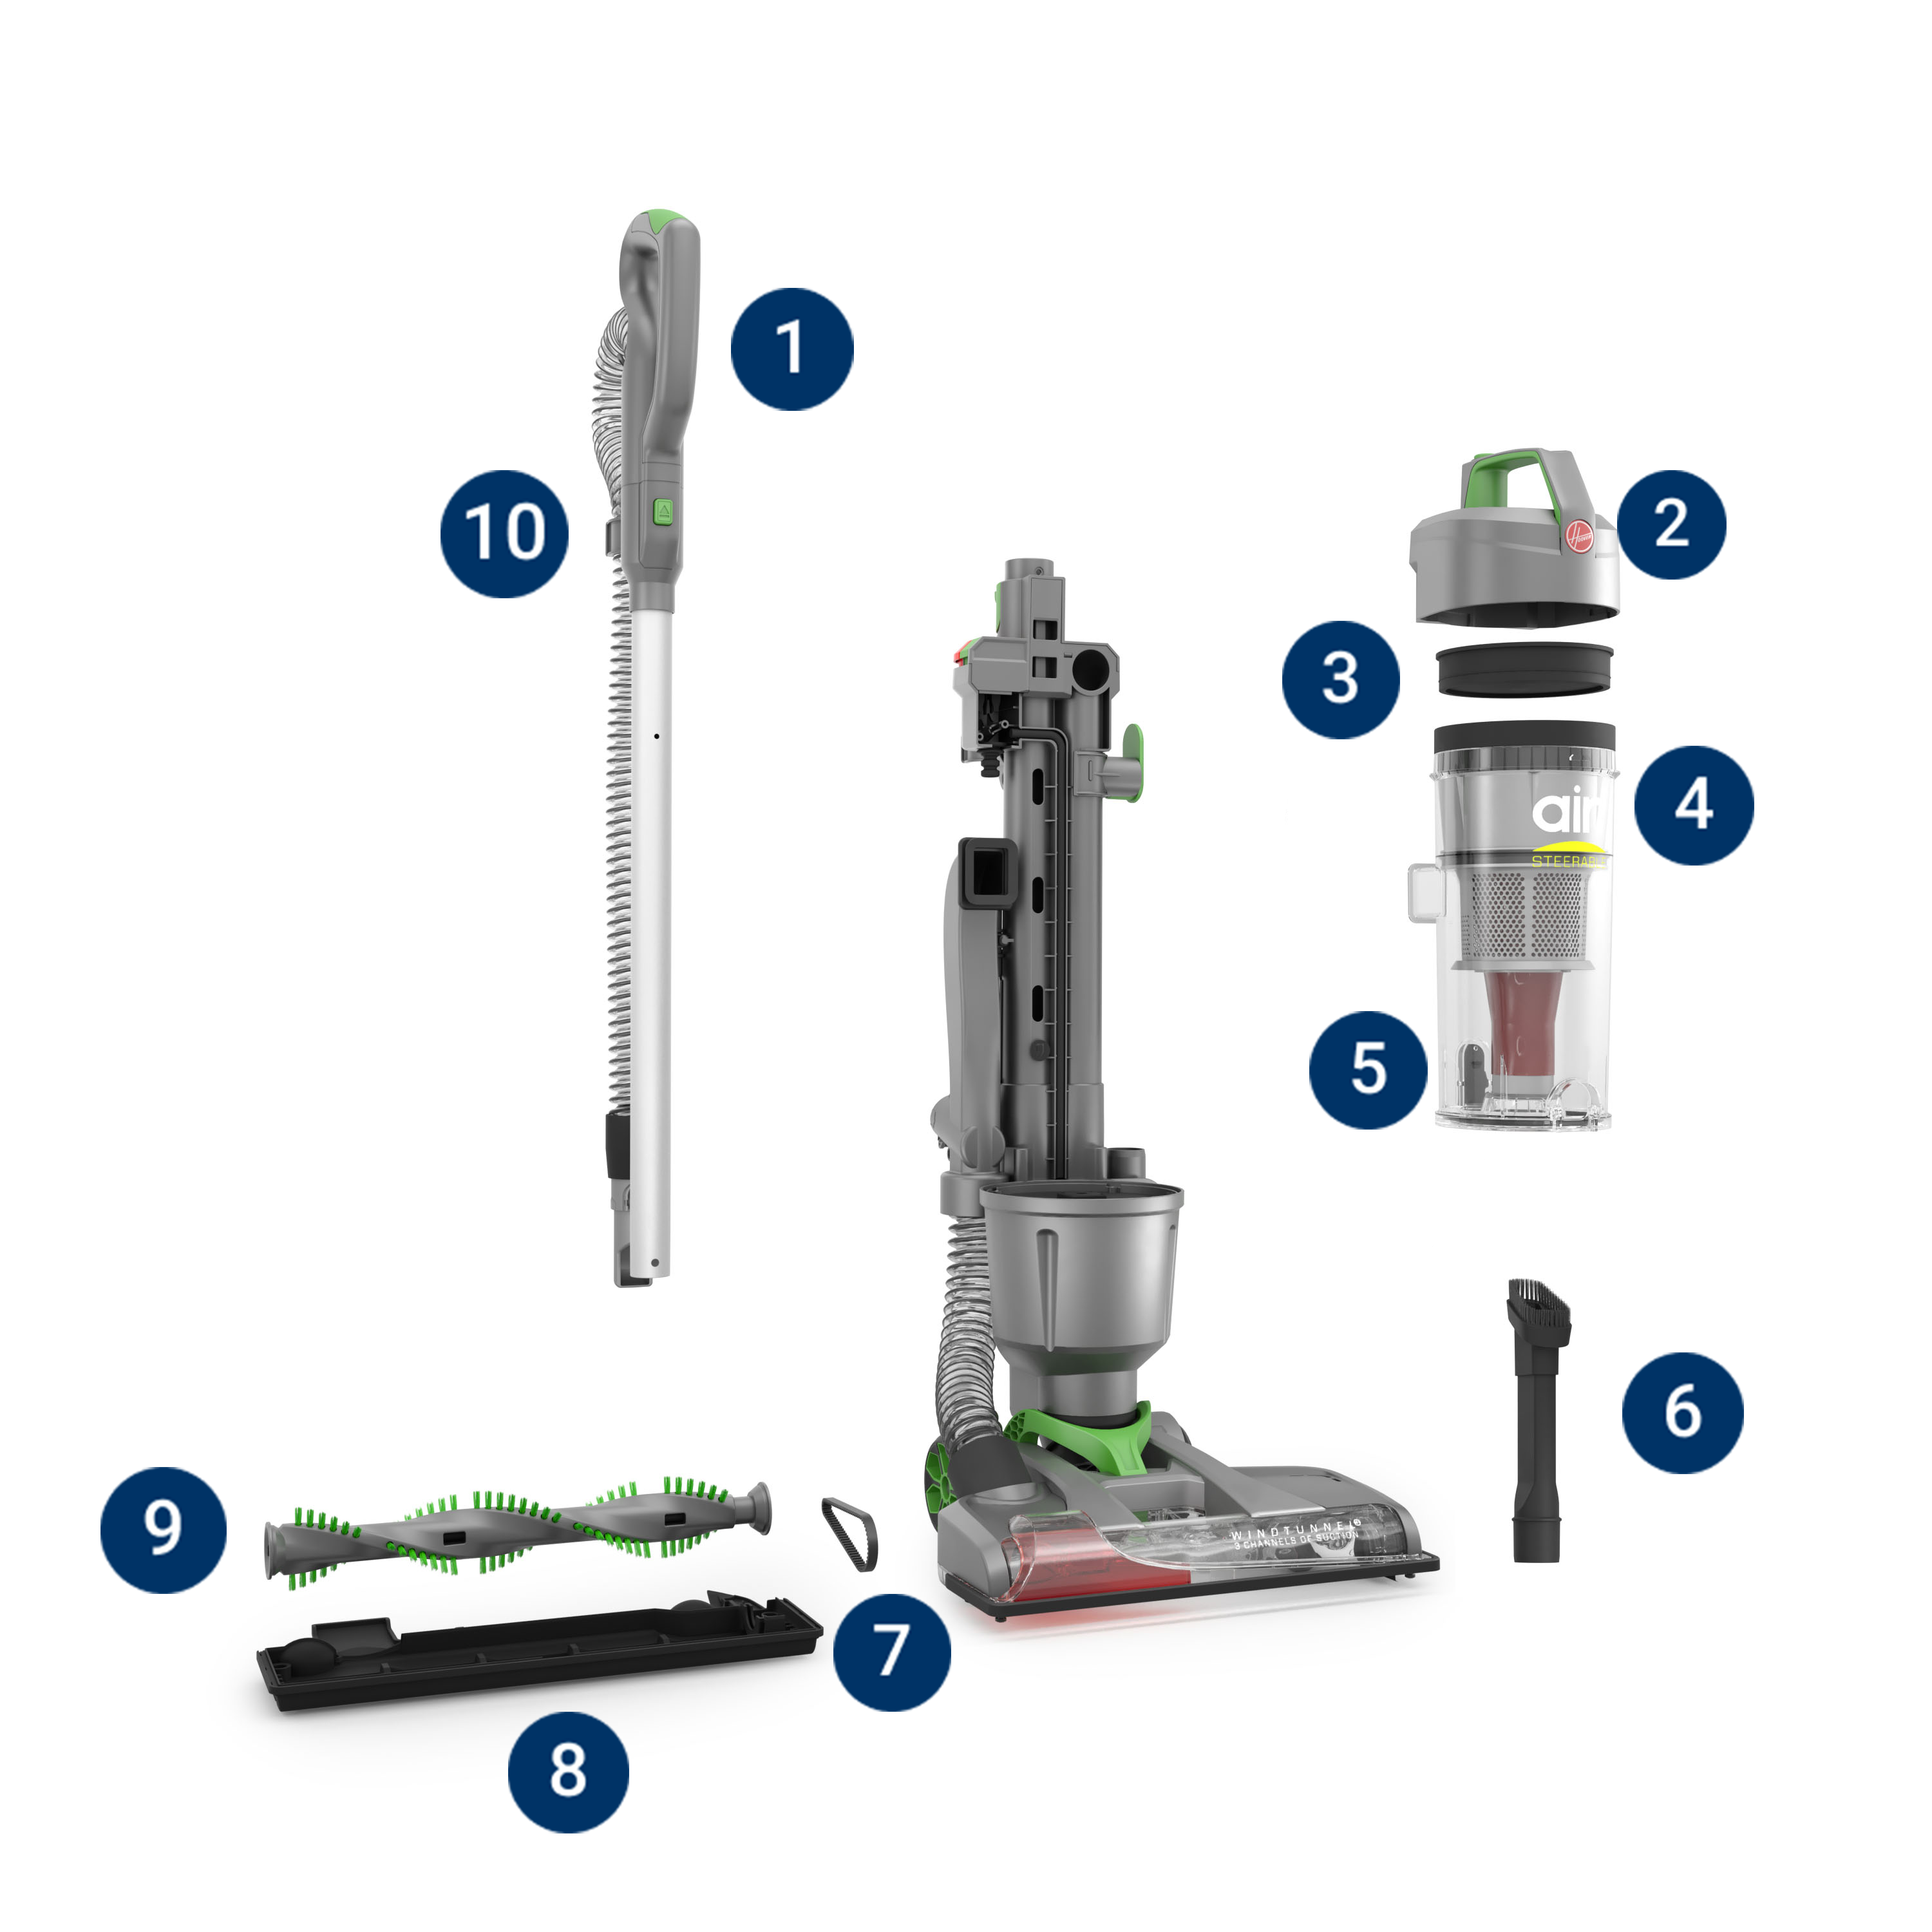 WindTunnel Air Steerable Upright Vacuum parts